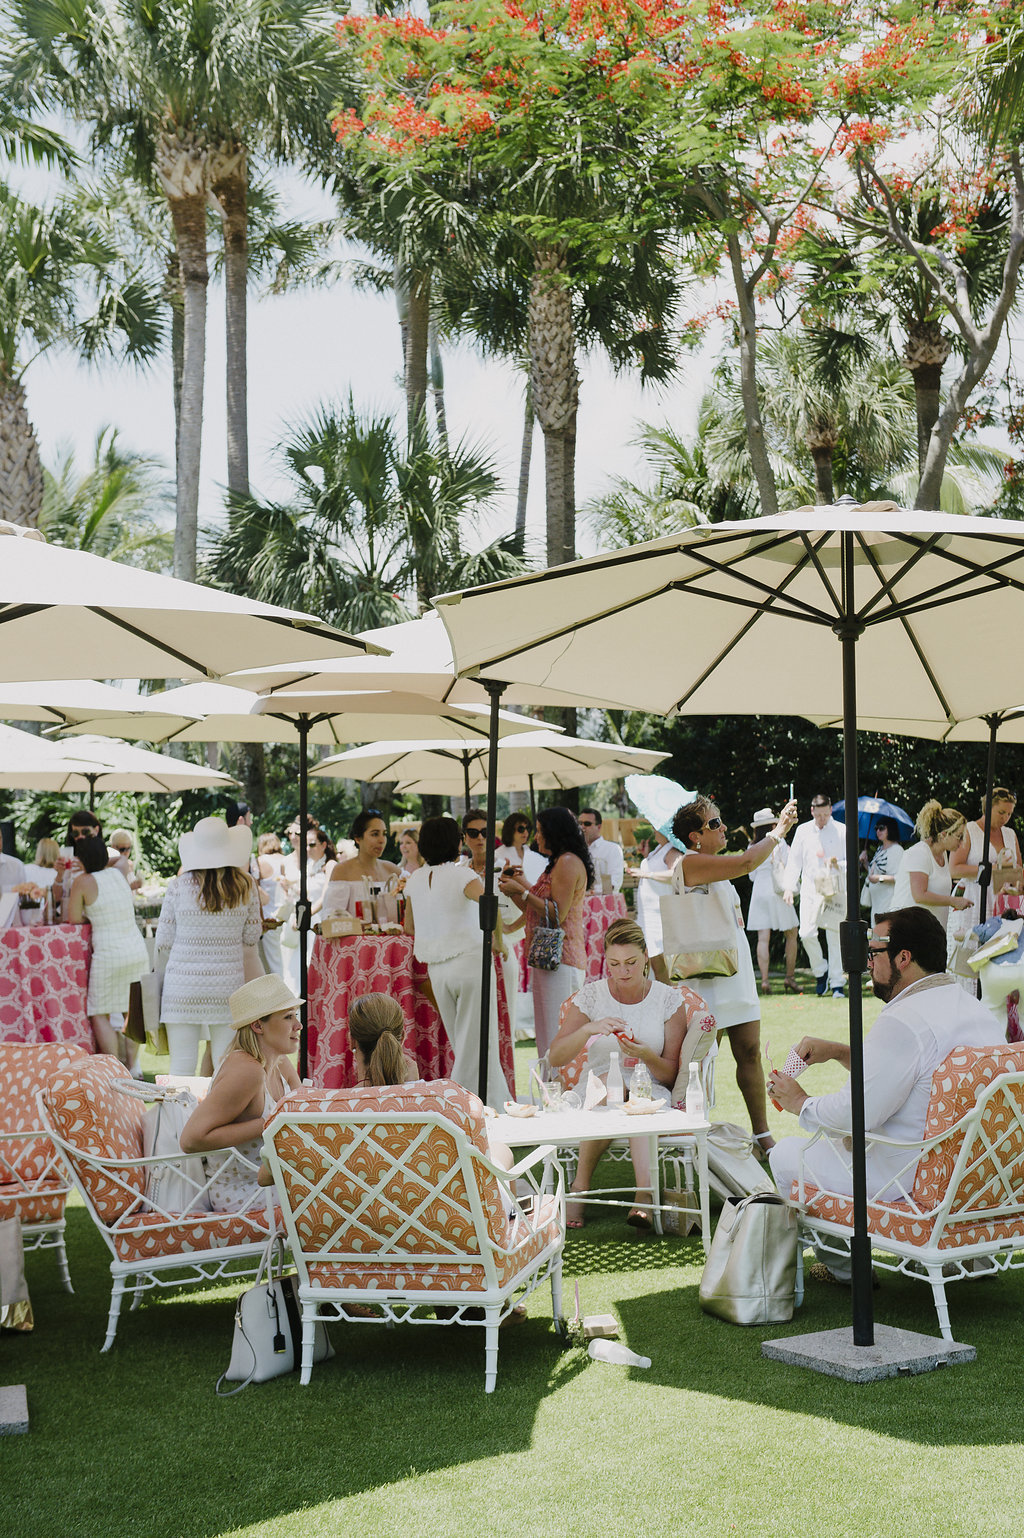 photo fo people eating picnic on a lawn dressed in white under white umbrellas